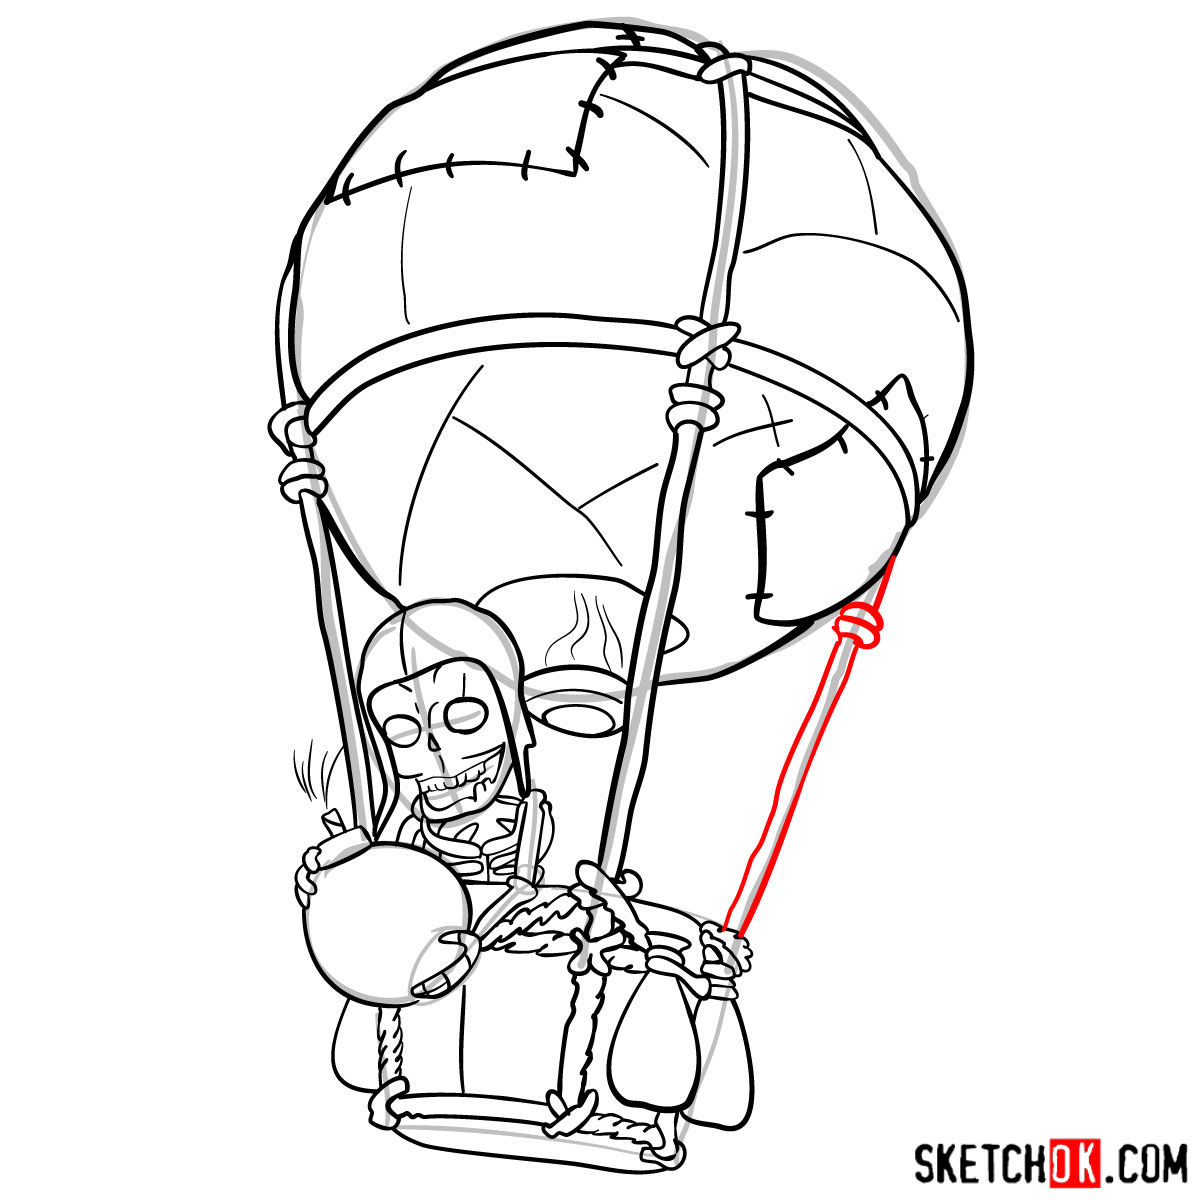 How to draw Balloon with a skeleton - step 12